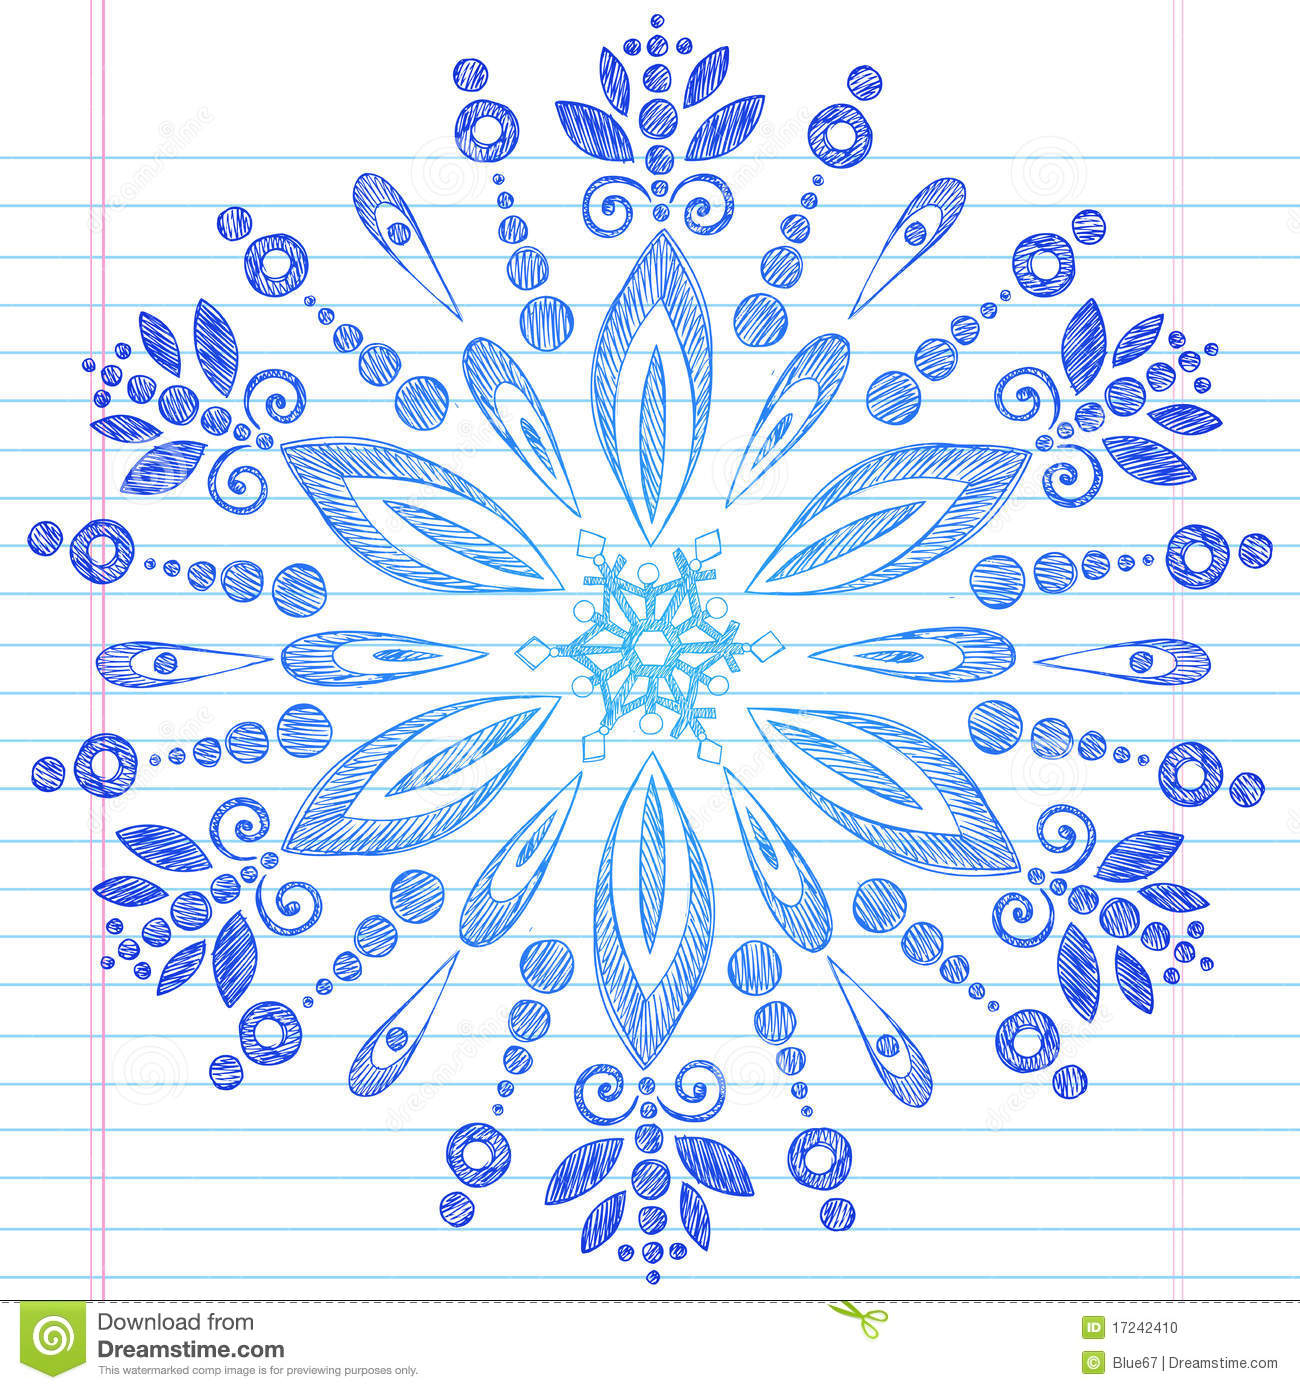 how to draw snowflakes on paper